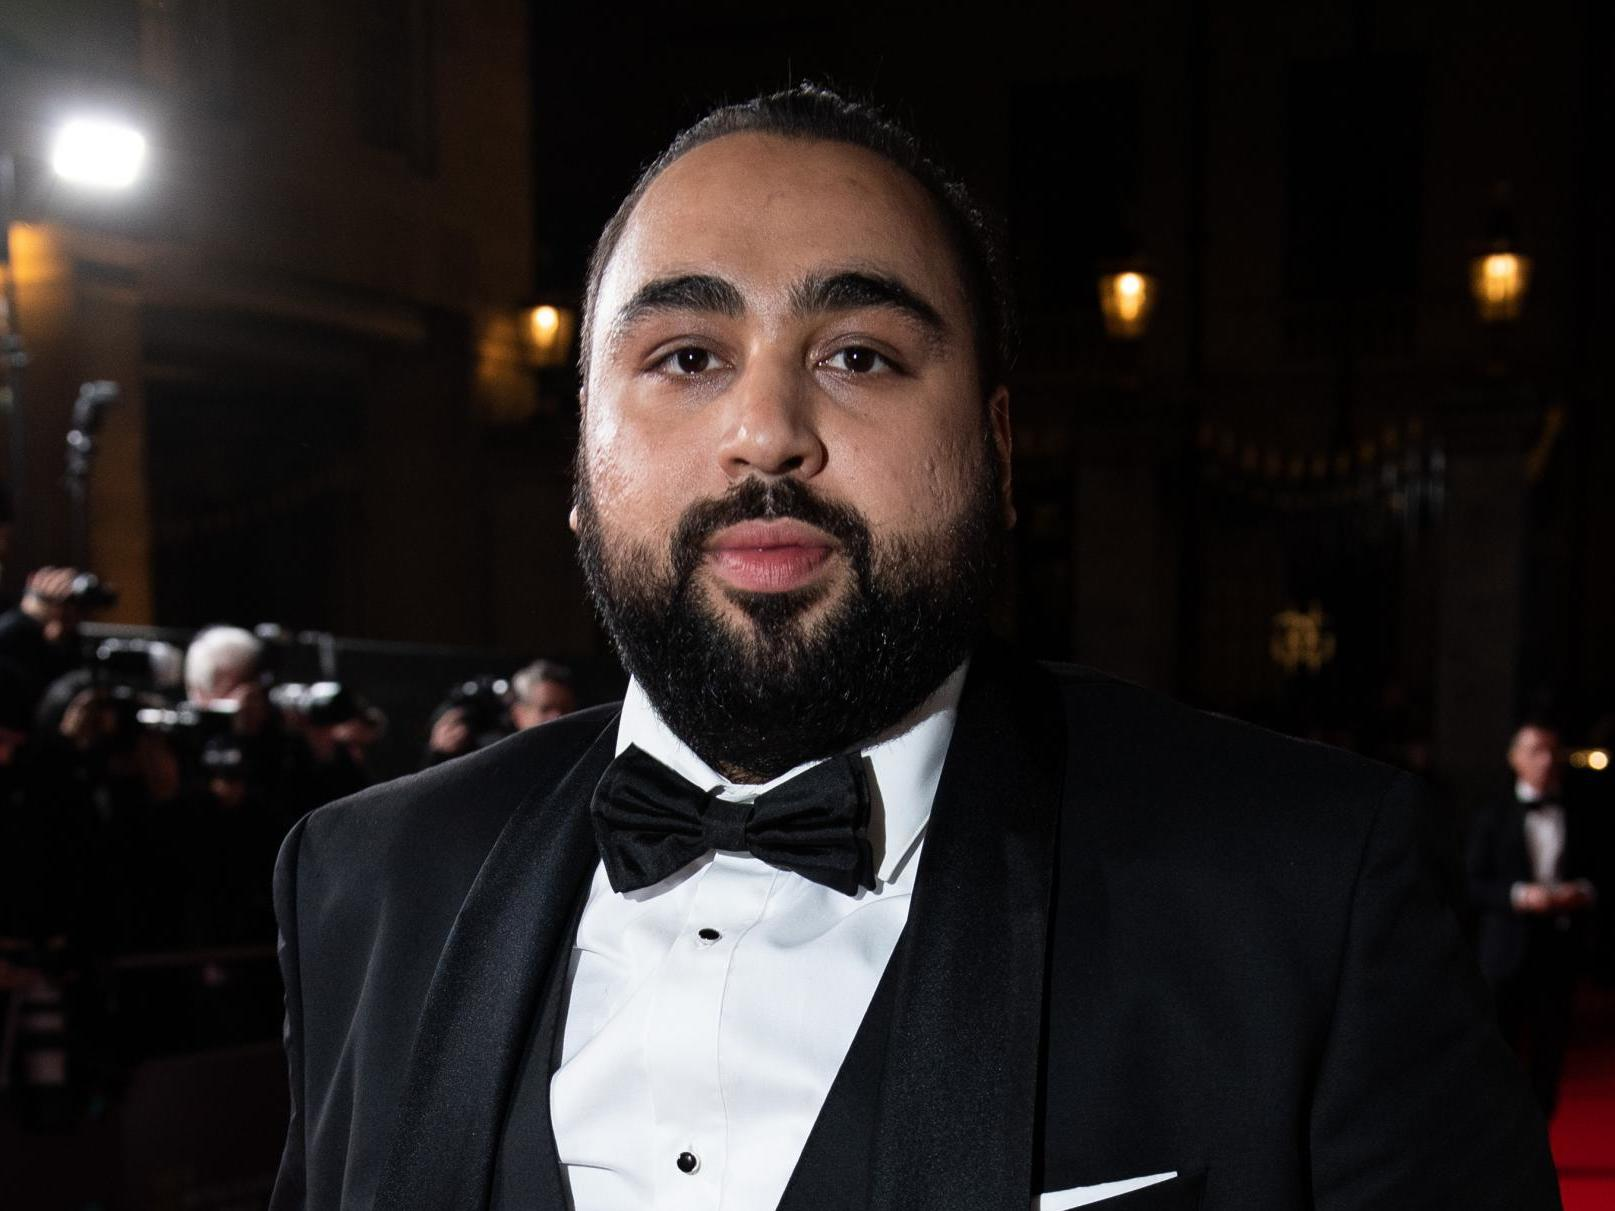 Baftas 2020: Chabuddy G actor Asim Chaudhry mocks Laurence Fox over 1917  comments   The Independent   The Independent